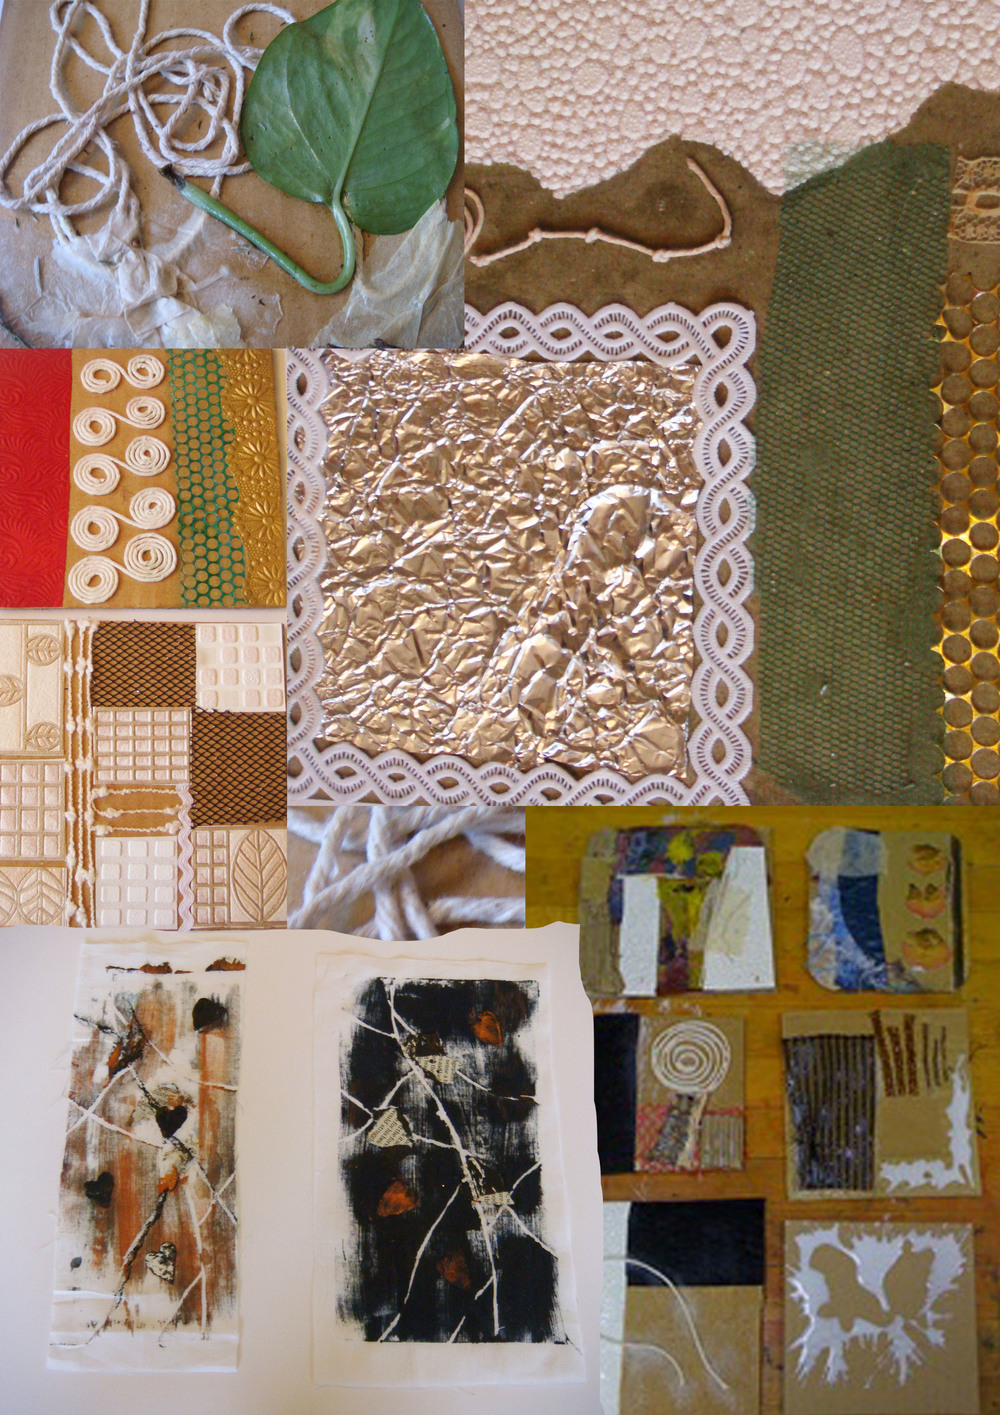 Collograph workshopsmontage.jpg